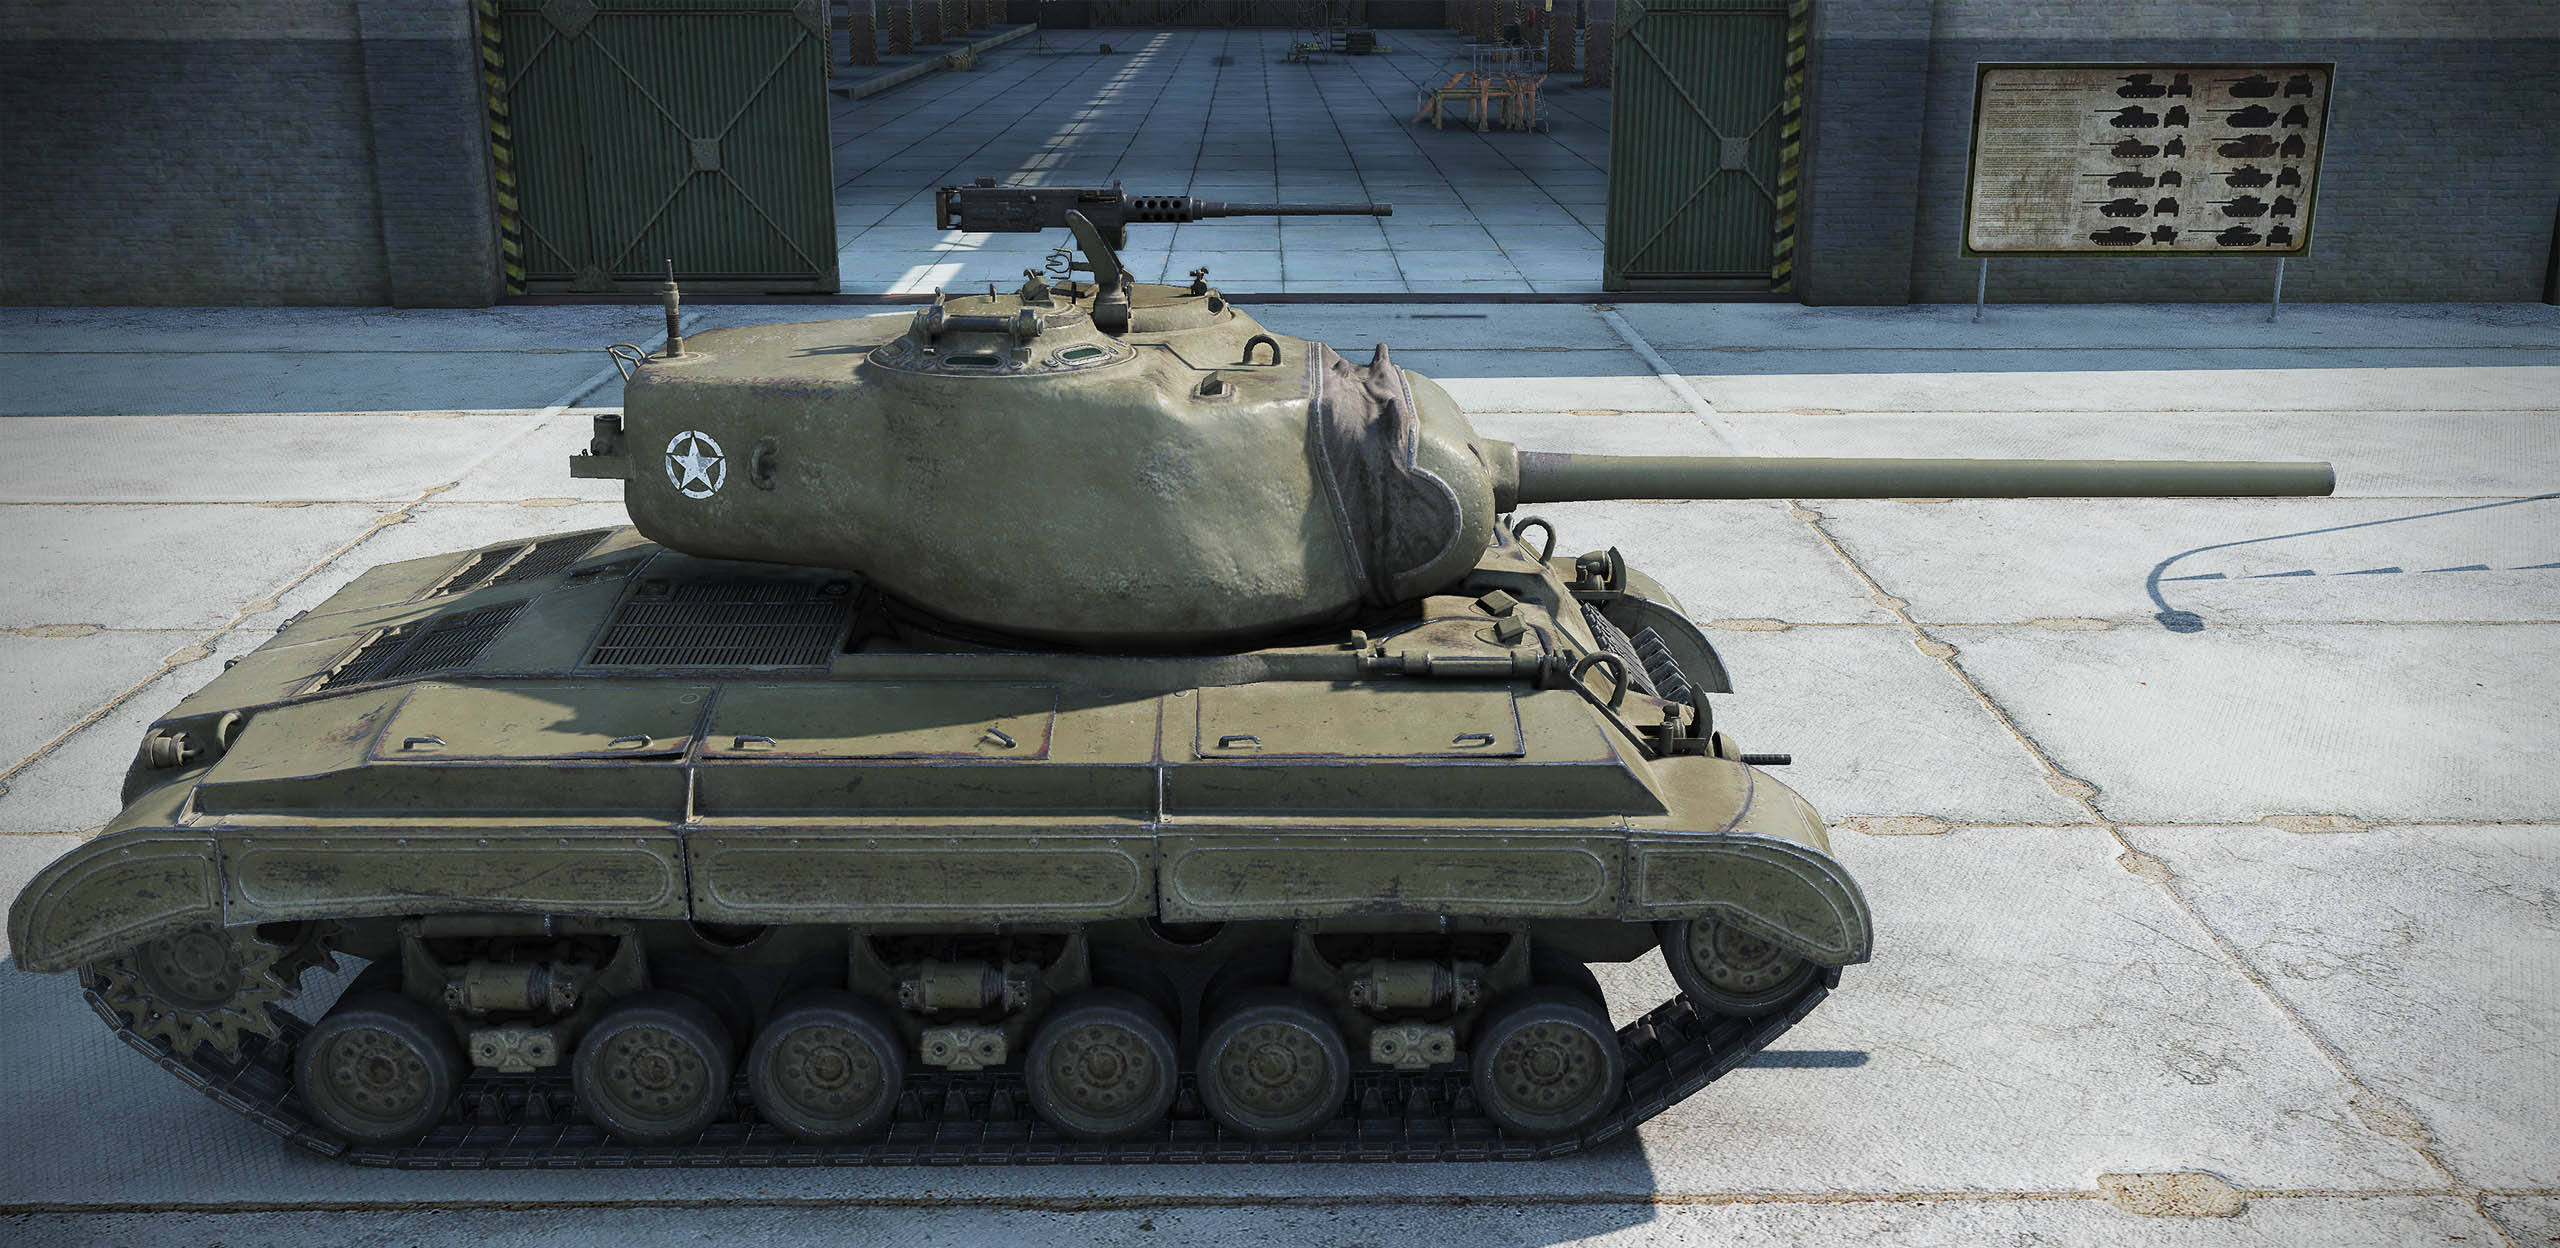 The T25 Pilot Number 1 has standard penetration and damage, but this standard is good for a Premium tank.